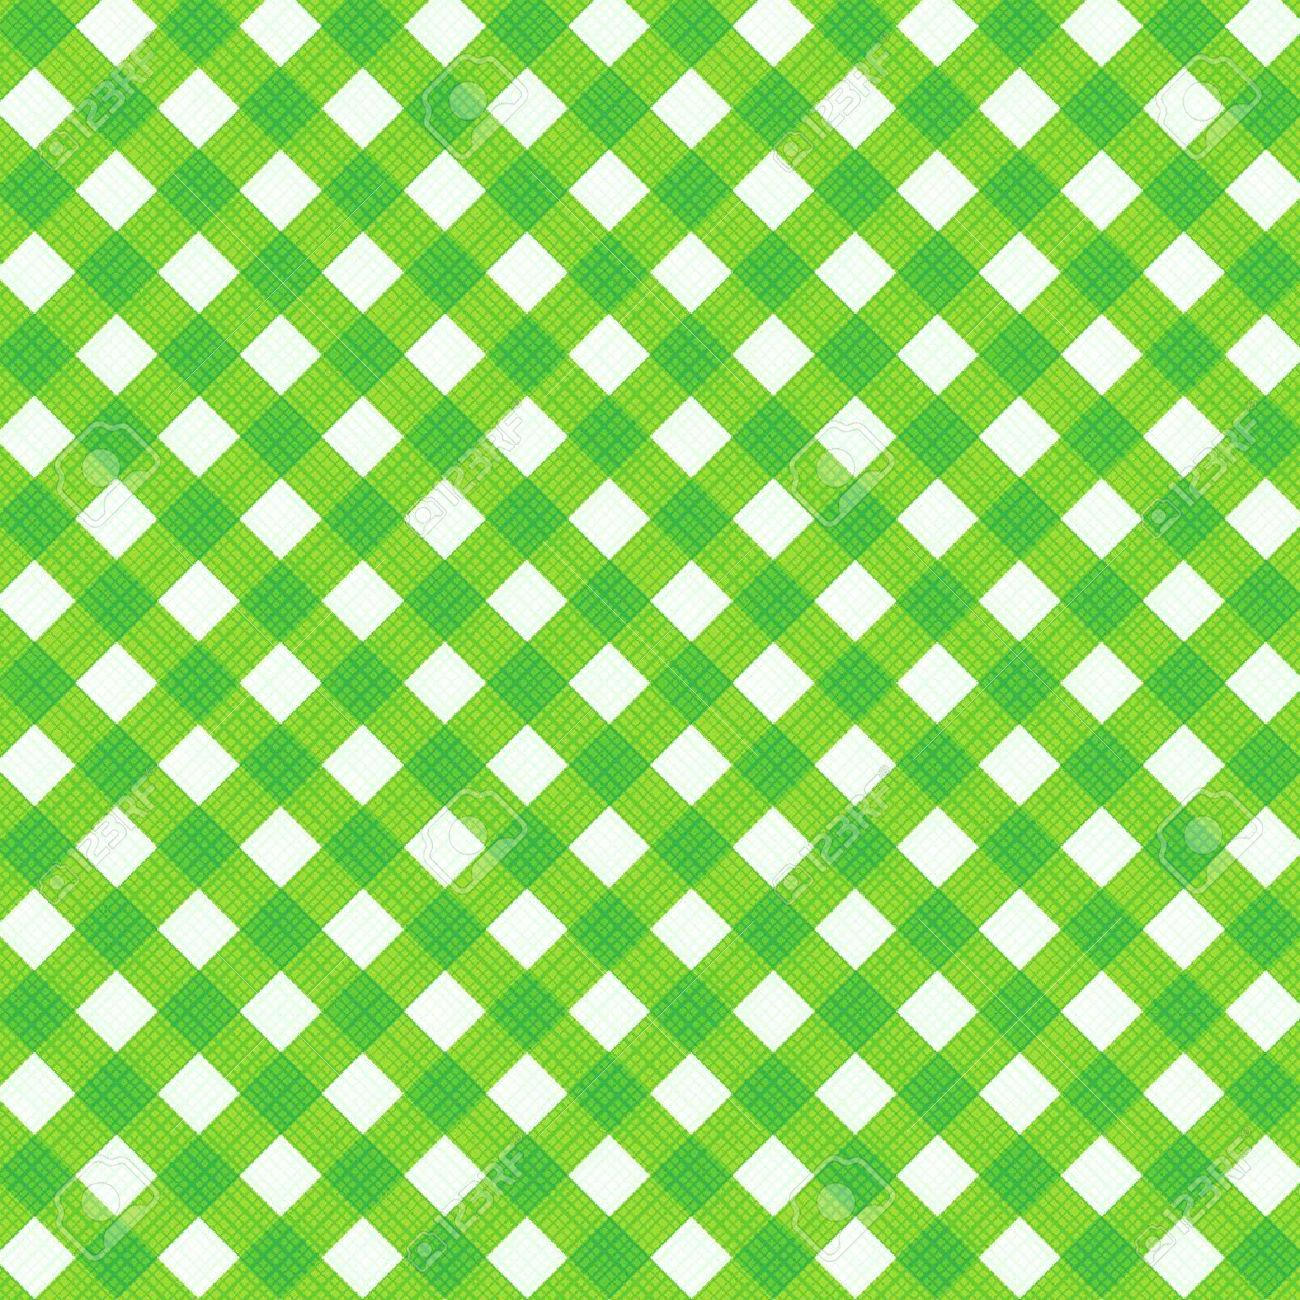 Fresh Green And White Gingham Cloth Background With Fabric Texture Suitable For Spring Summer